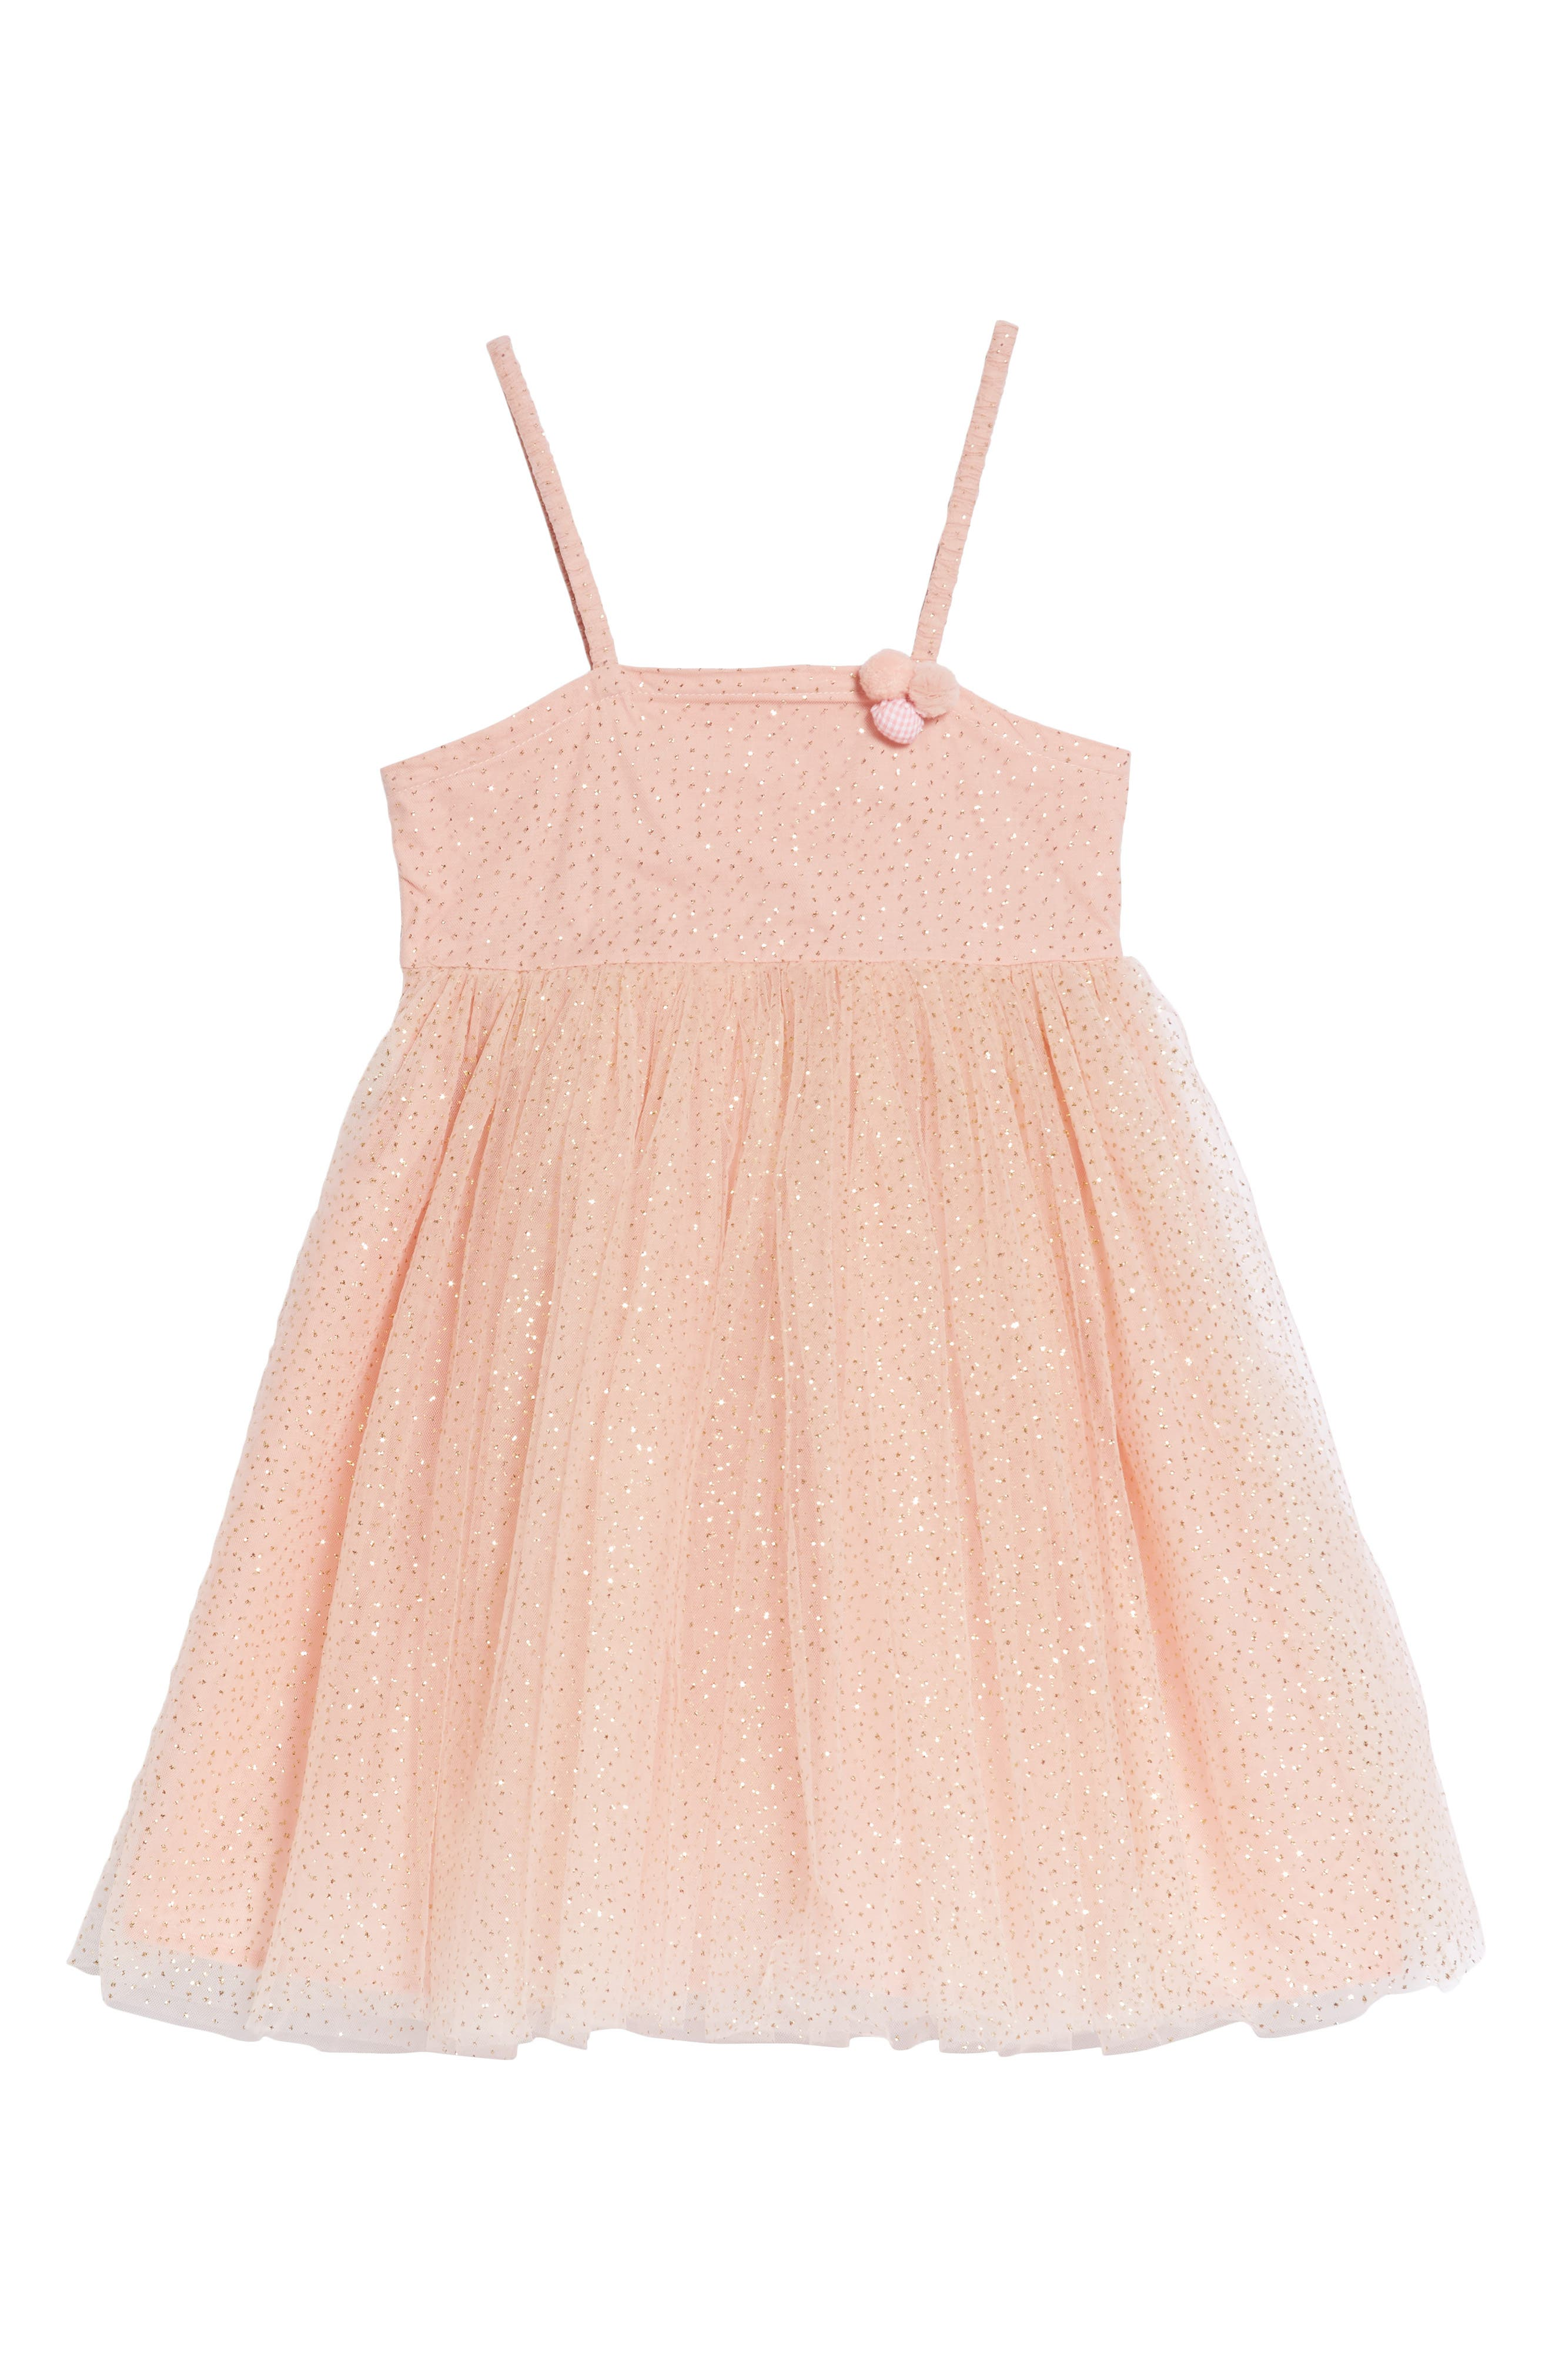 Glitter Dotted Tulle Empire Dress,                             Main thumbnail 1, color,                             Peach